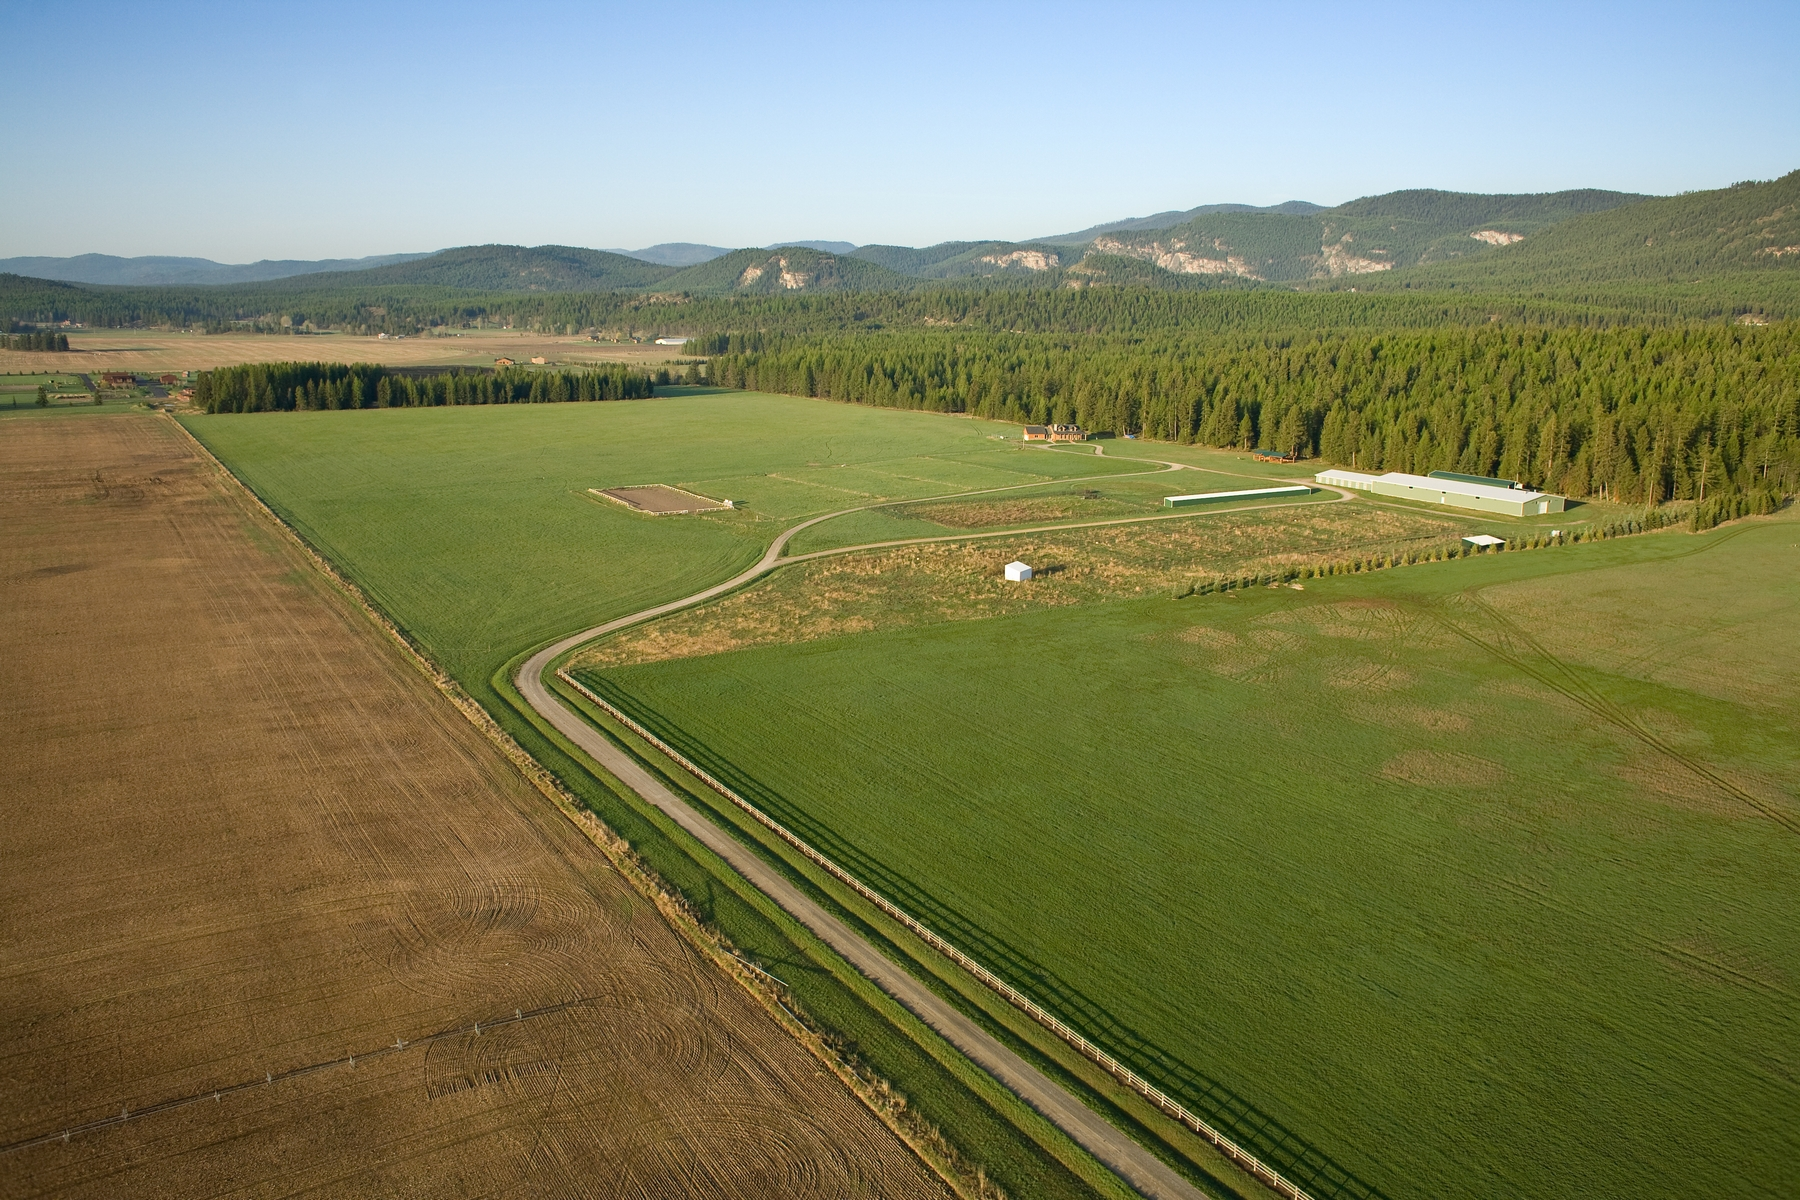 Land for Sale at 567 & 573 Twin Bridges Rd , Whitefish, MT 59937 567 & 573 Twin Bridges Rd Whitefish, Montana, 59937 United States